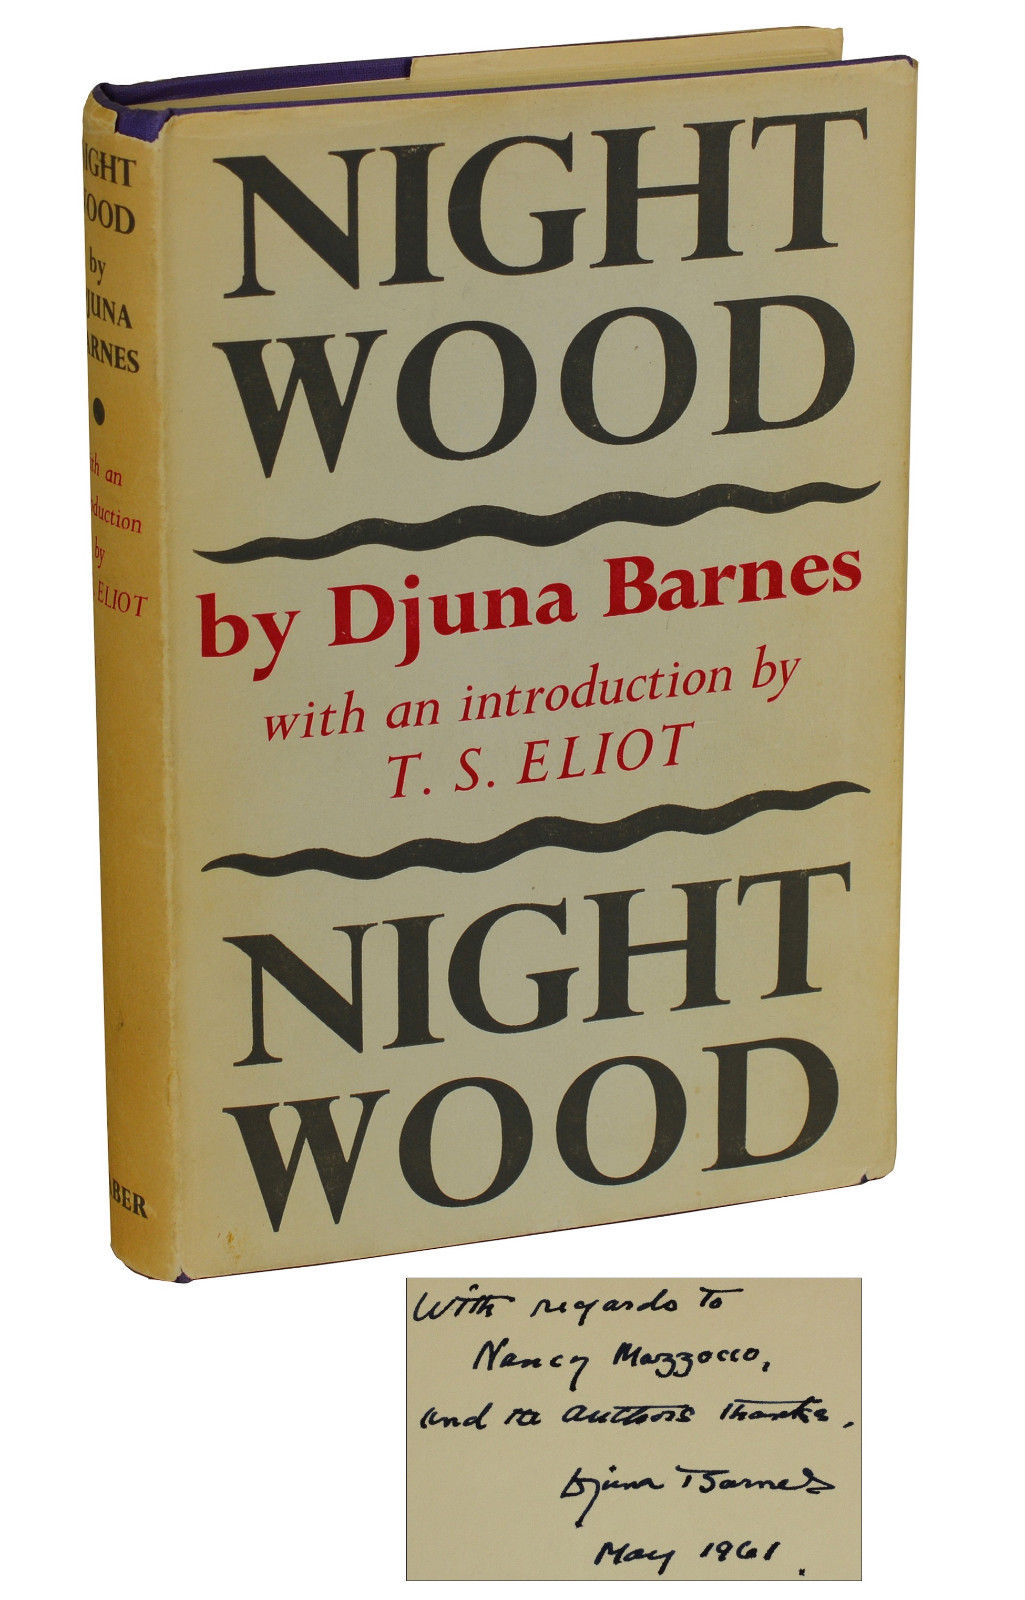 nightwood thesis My thesis being a suitably rhizomatic proliferation of thematic obsessions, personal anecdotes, theoretical debates,  n nightwood djuna barnes r ryder.